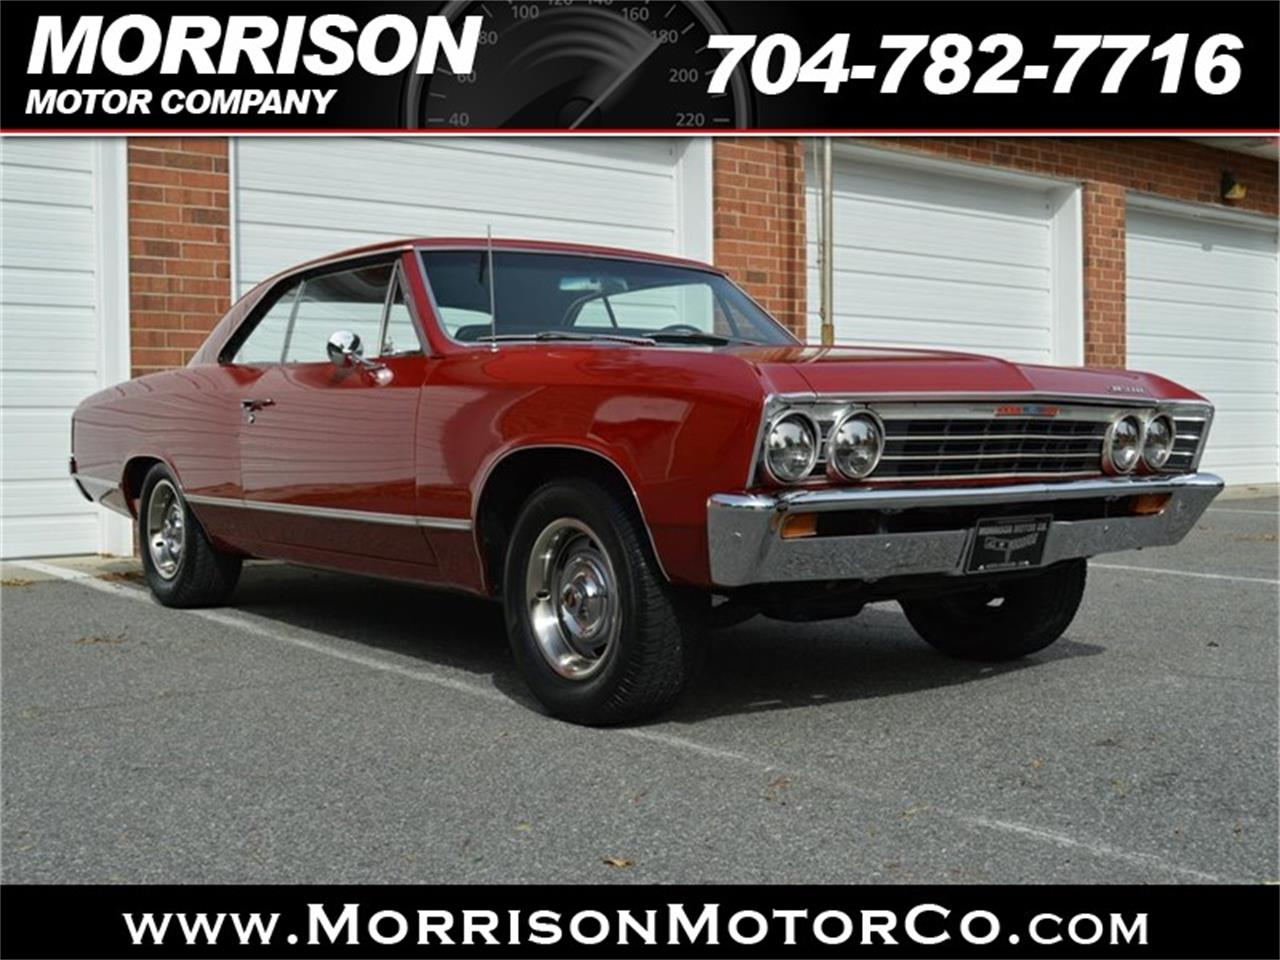 Large Picture of Classic '67 Chevrolet Chevelle Malibu Offered by Morrison Motor Company - P626